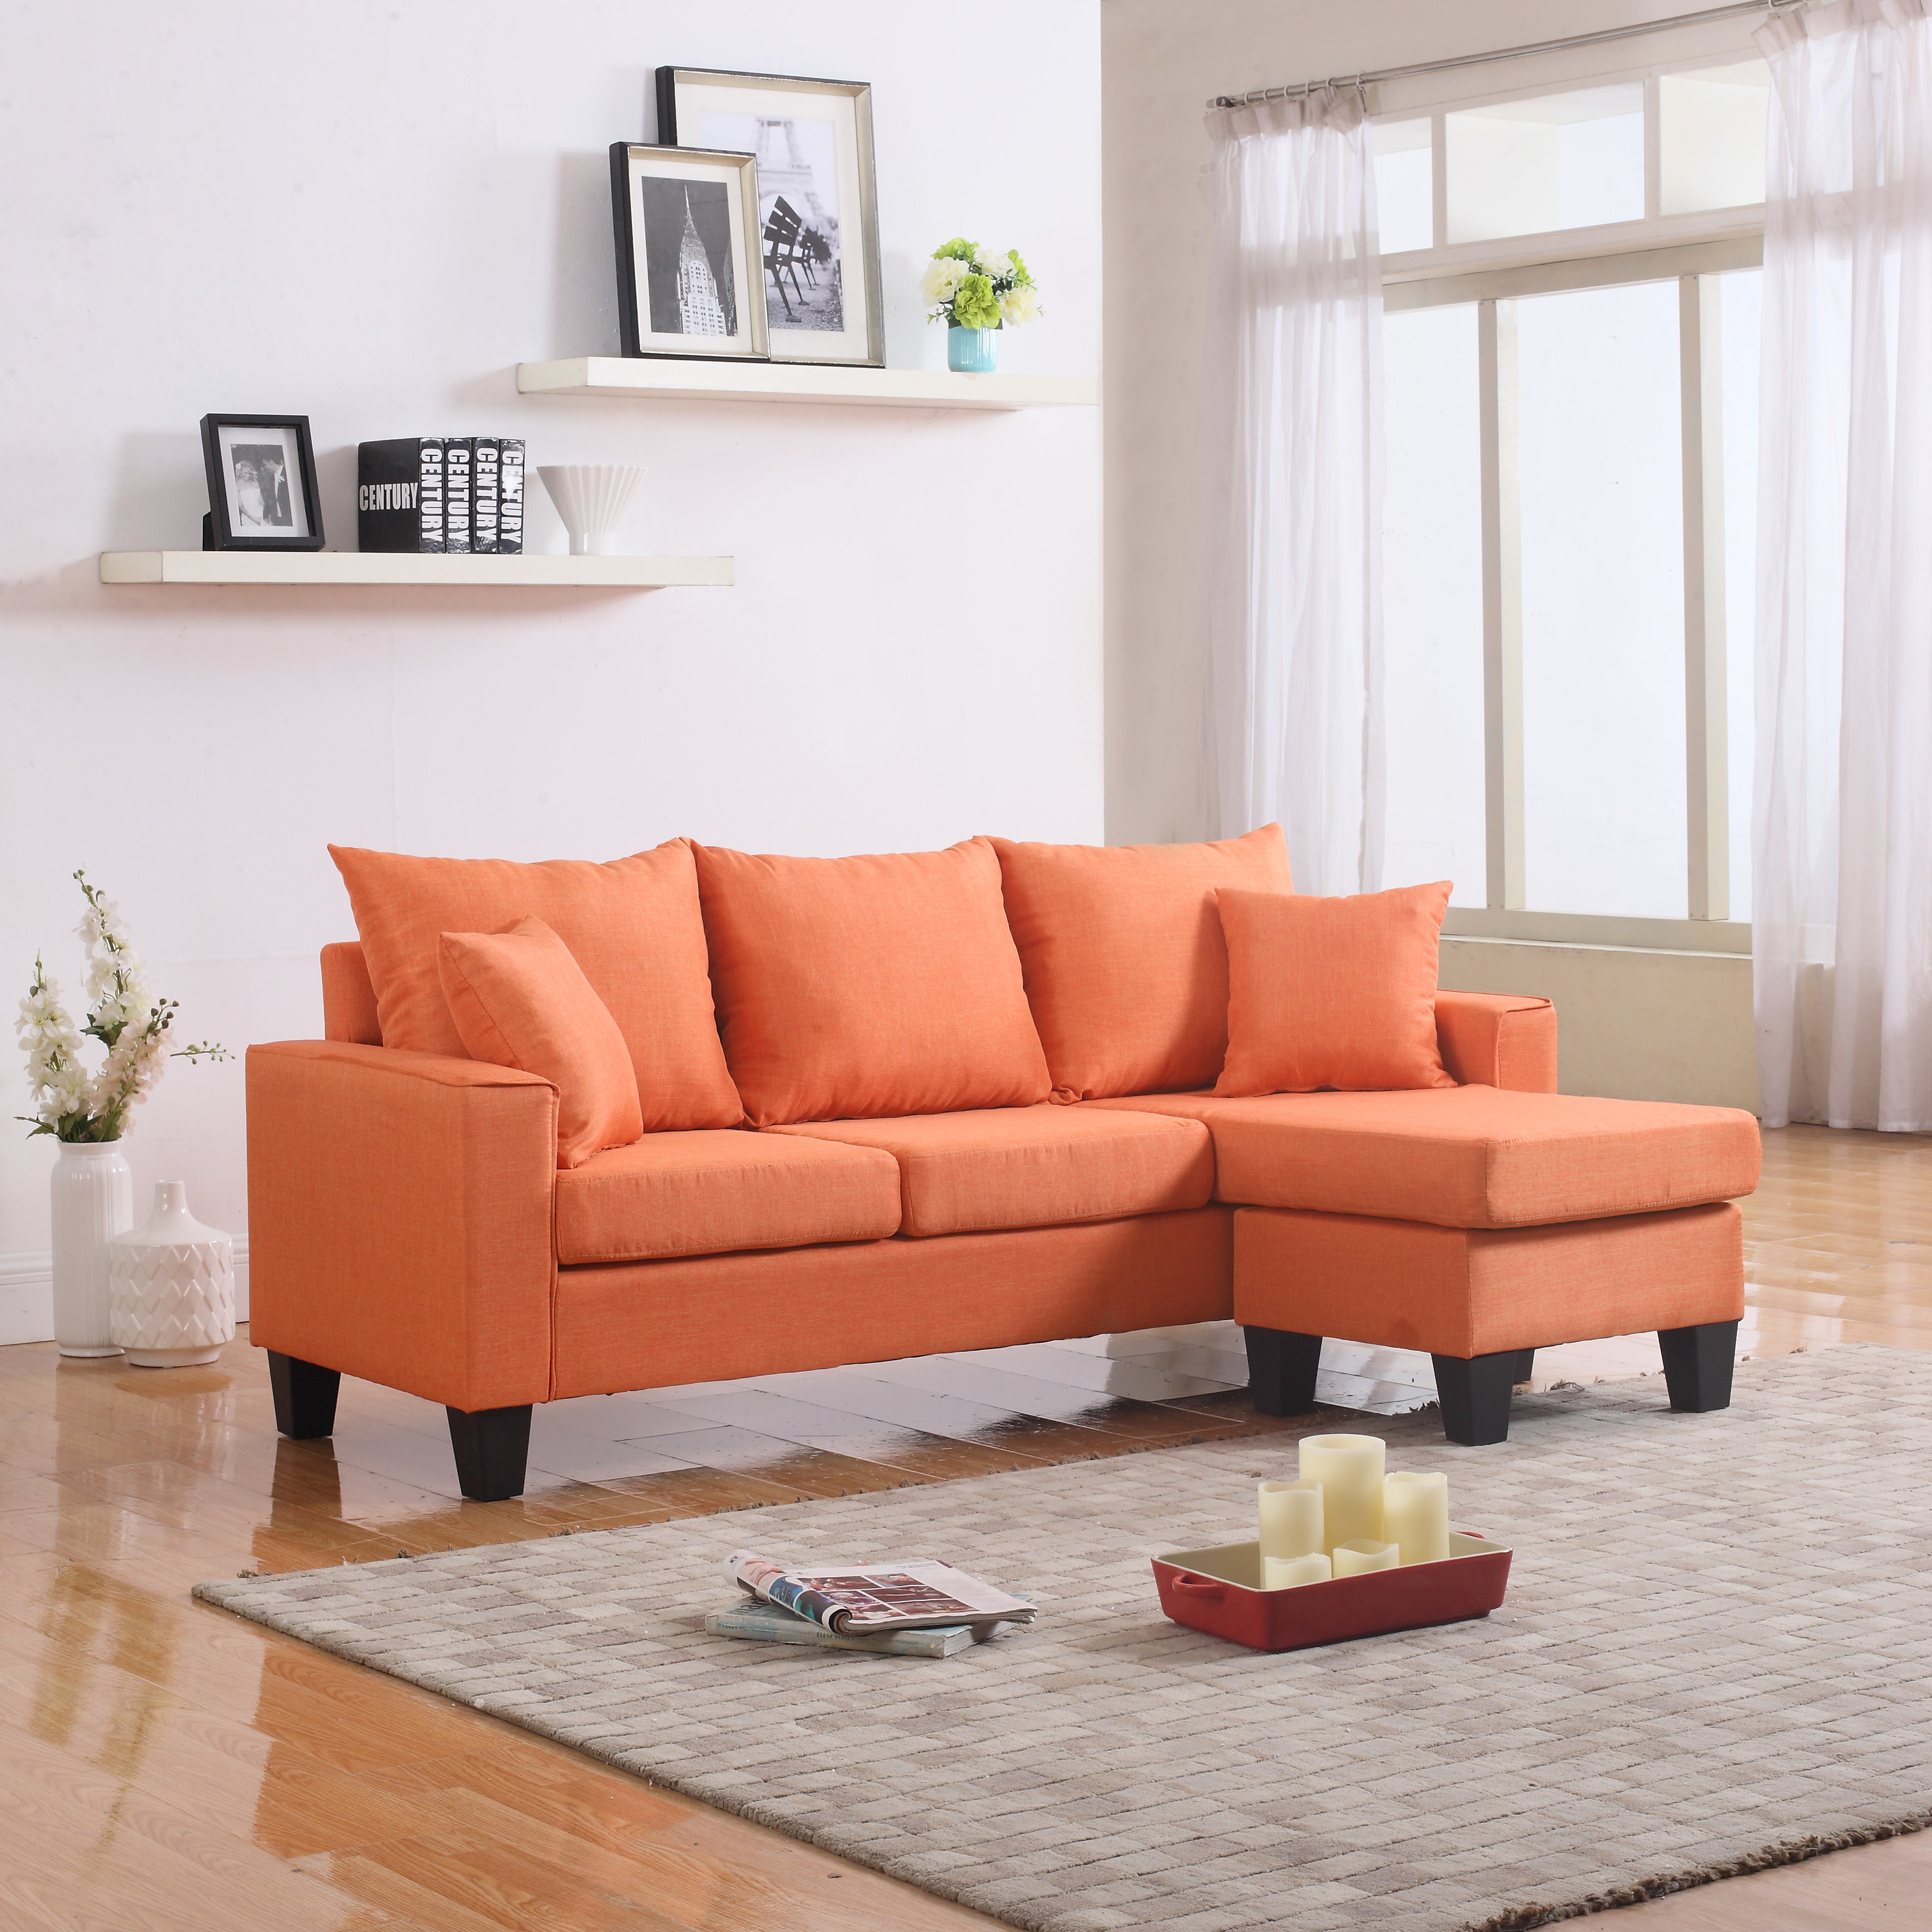 Orange couch with matching pillows and thick dark wooden legs